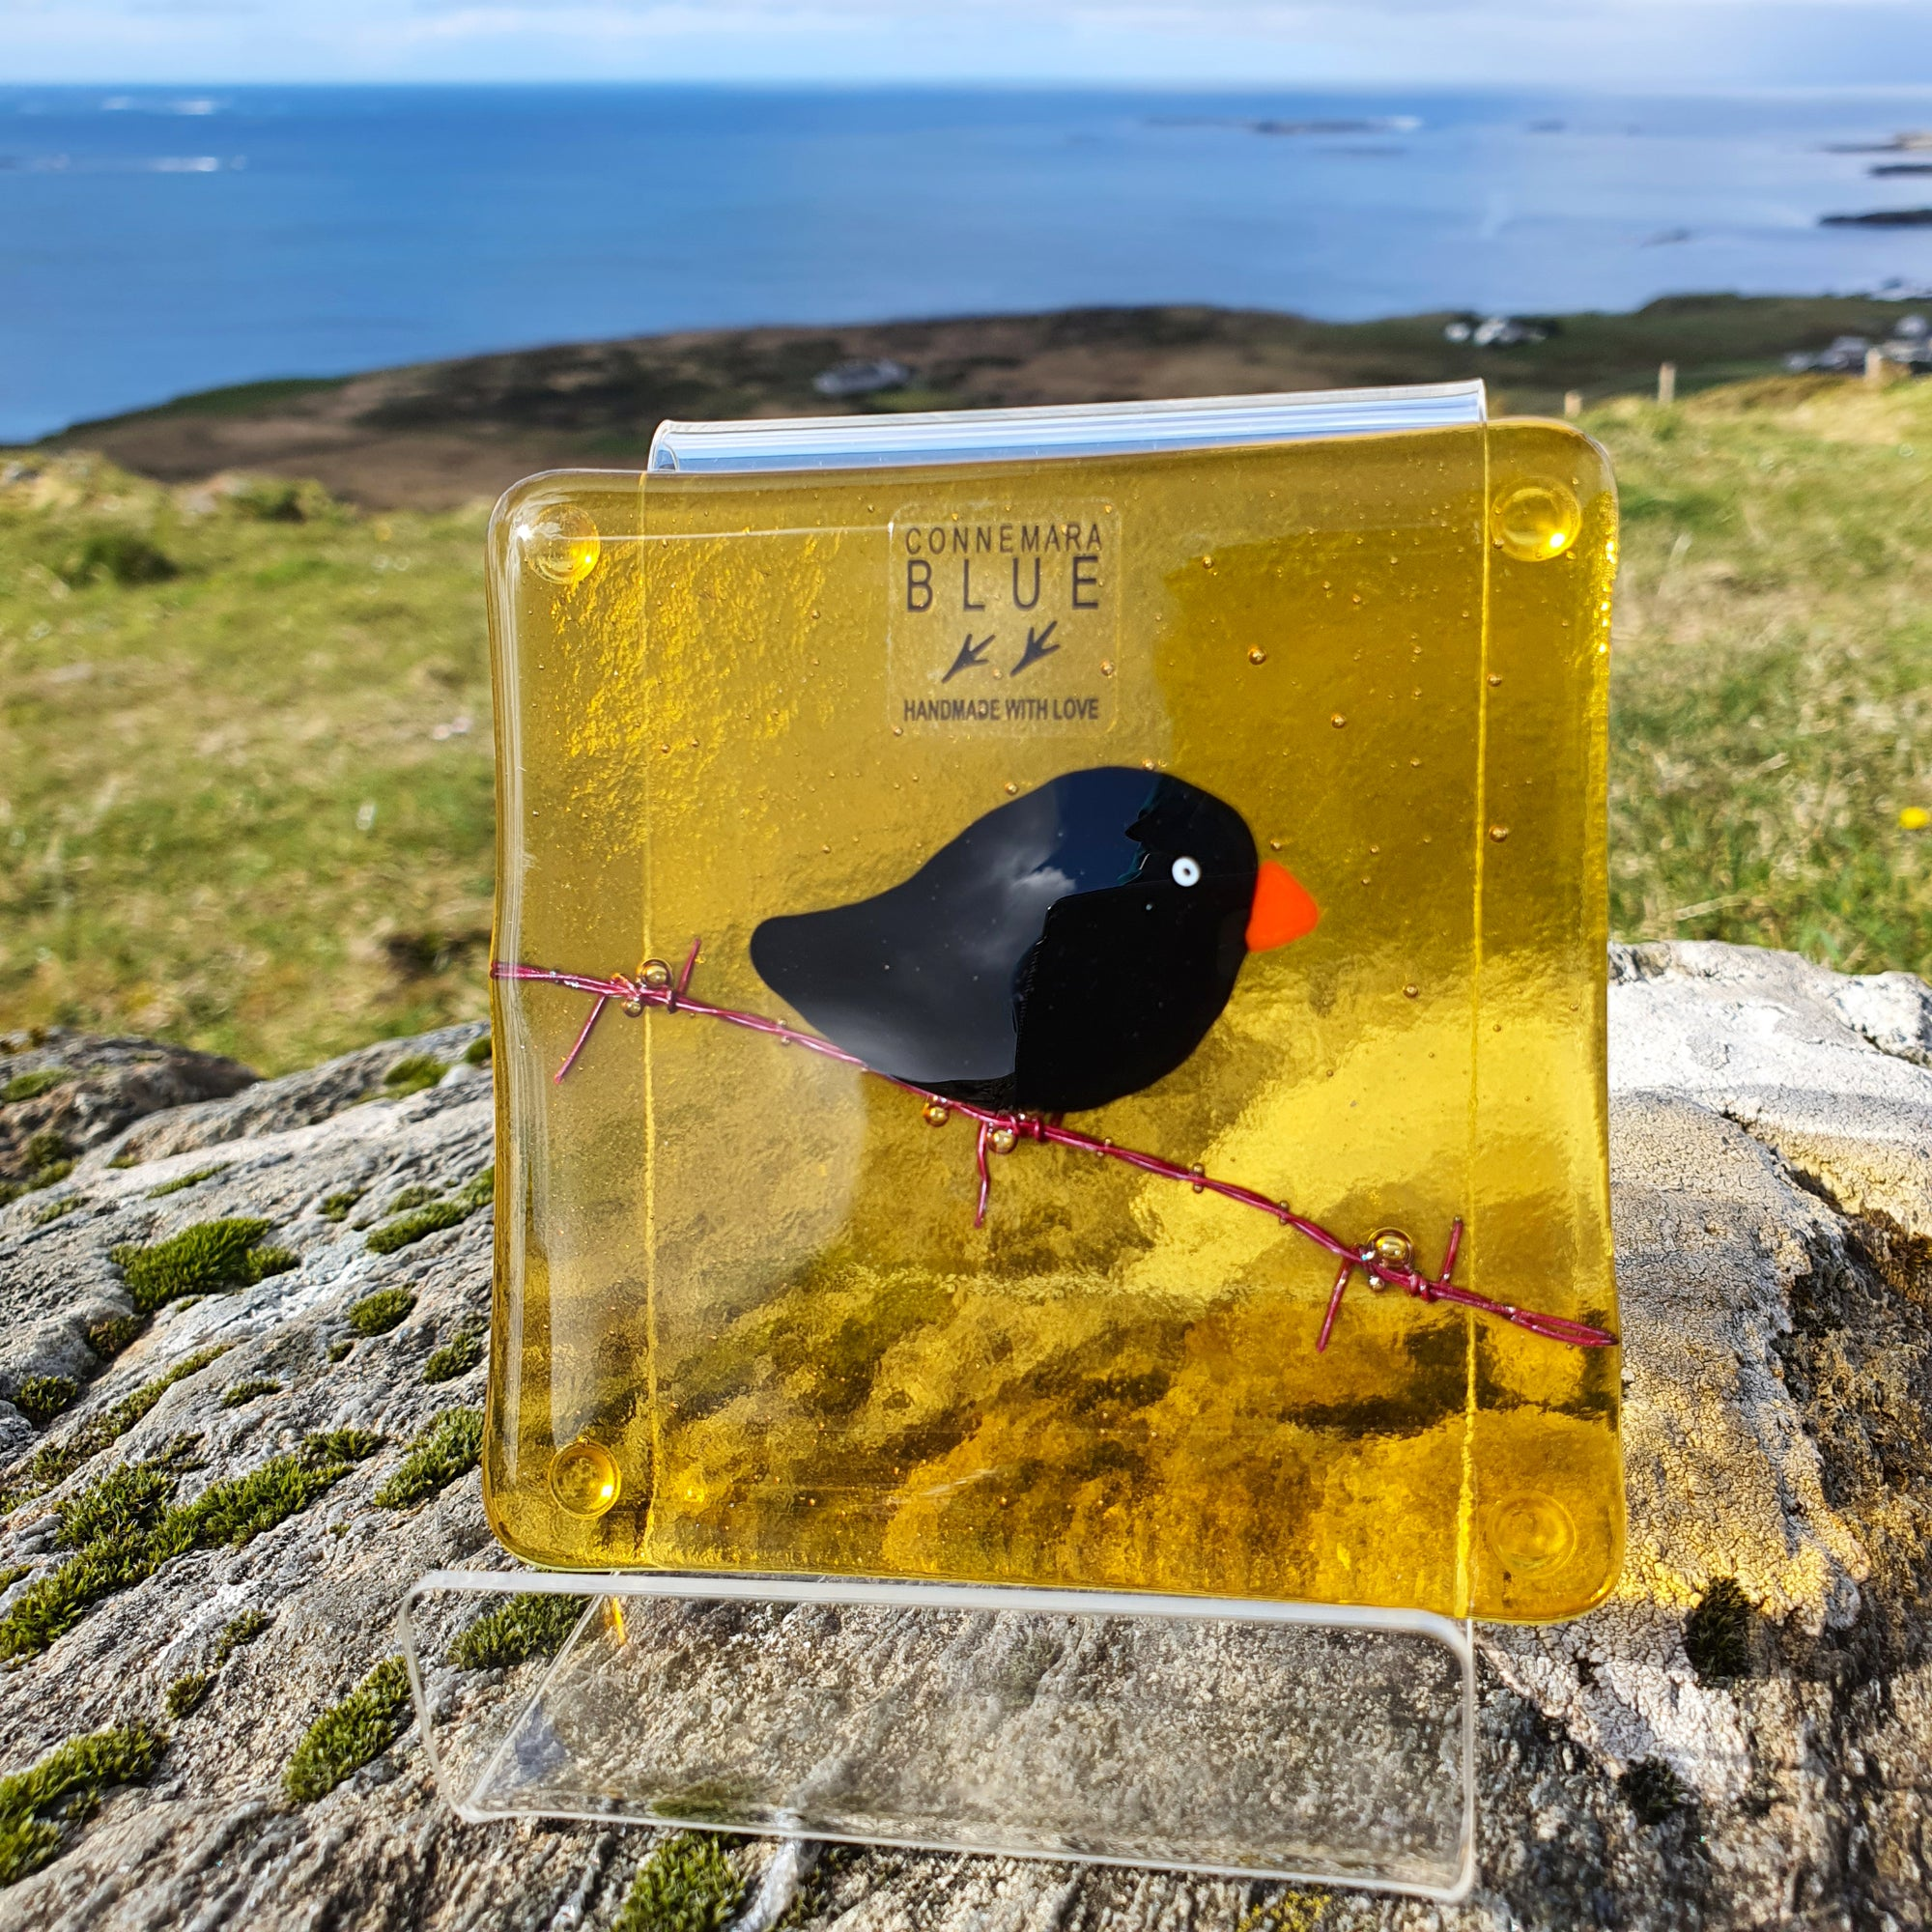 A fused glass coaster featuring a blackbird on barbed wire, handmade by Connemara Blue